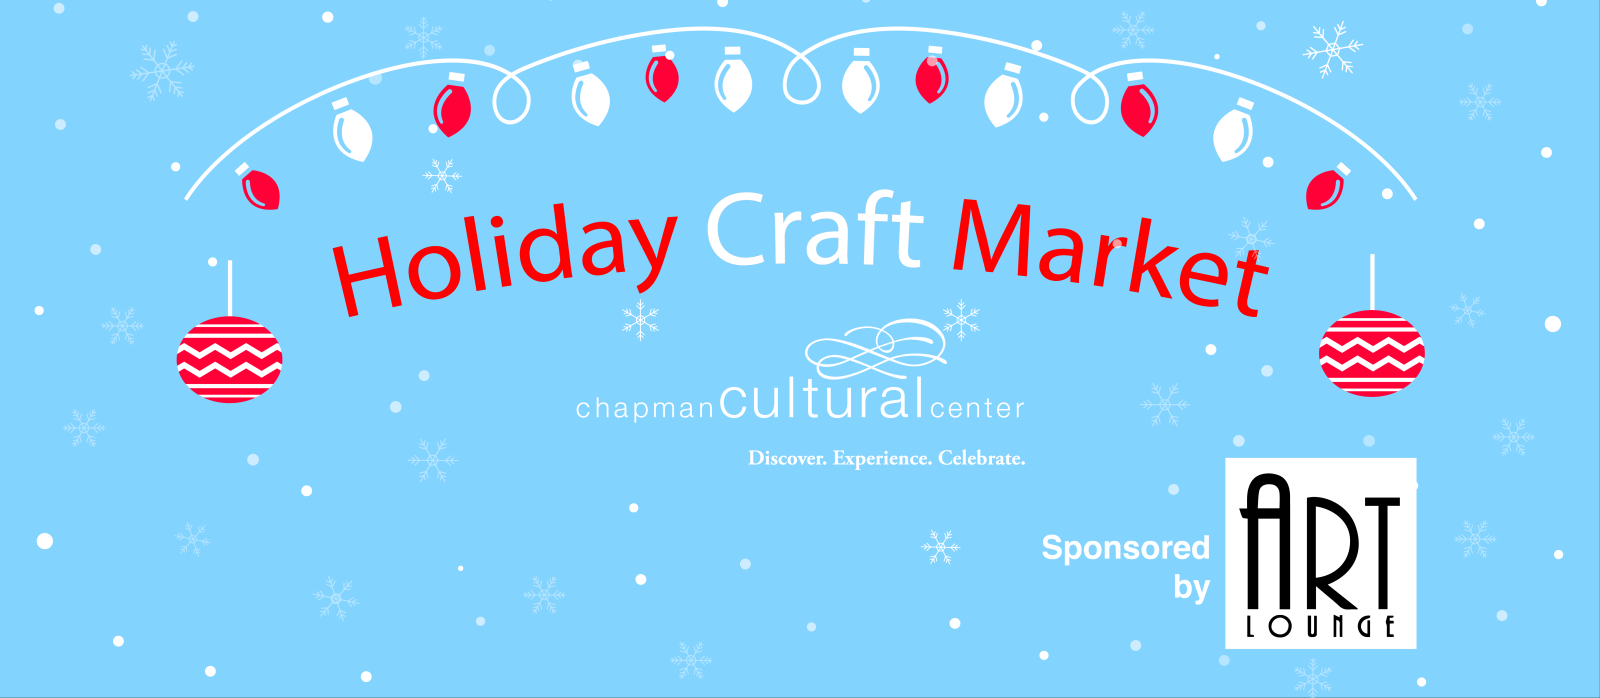 Holiday_Craft_Market_2018_Header.png